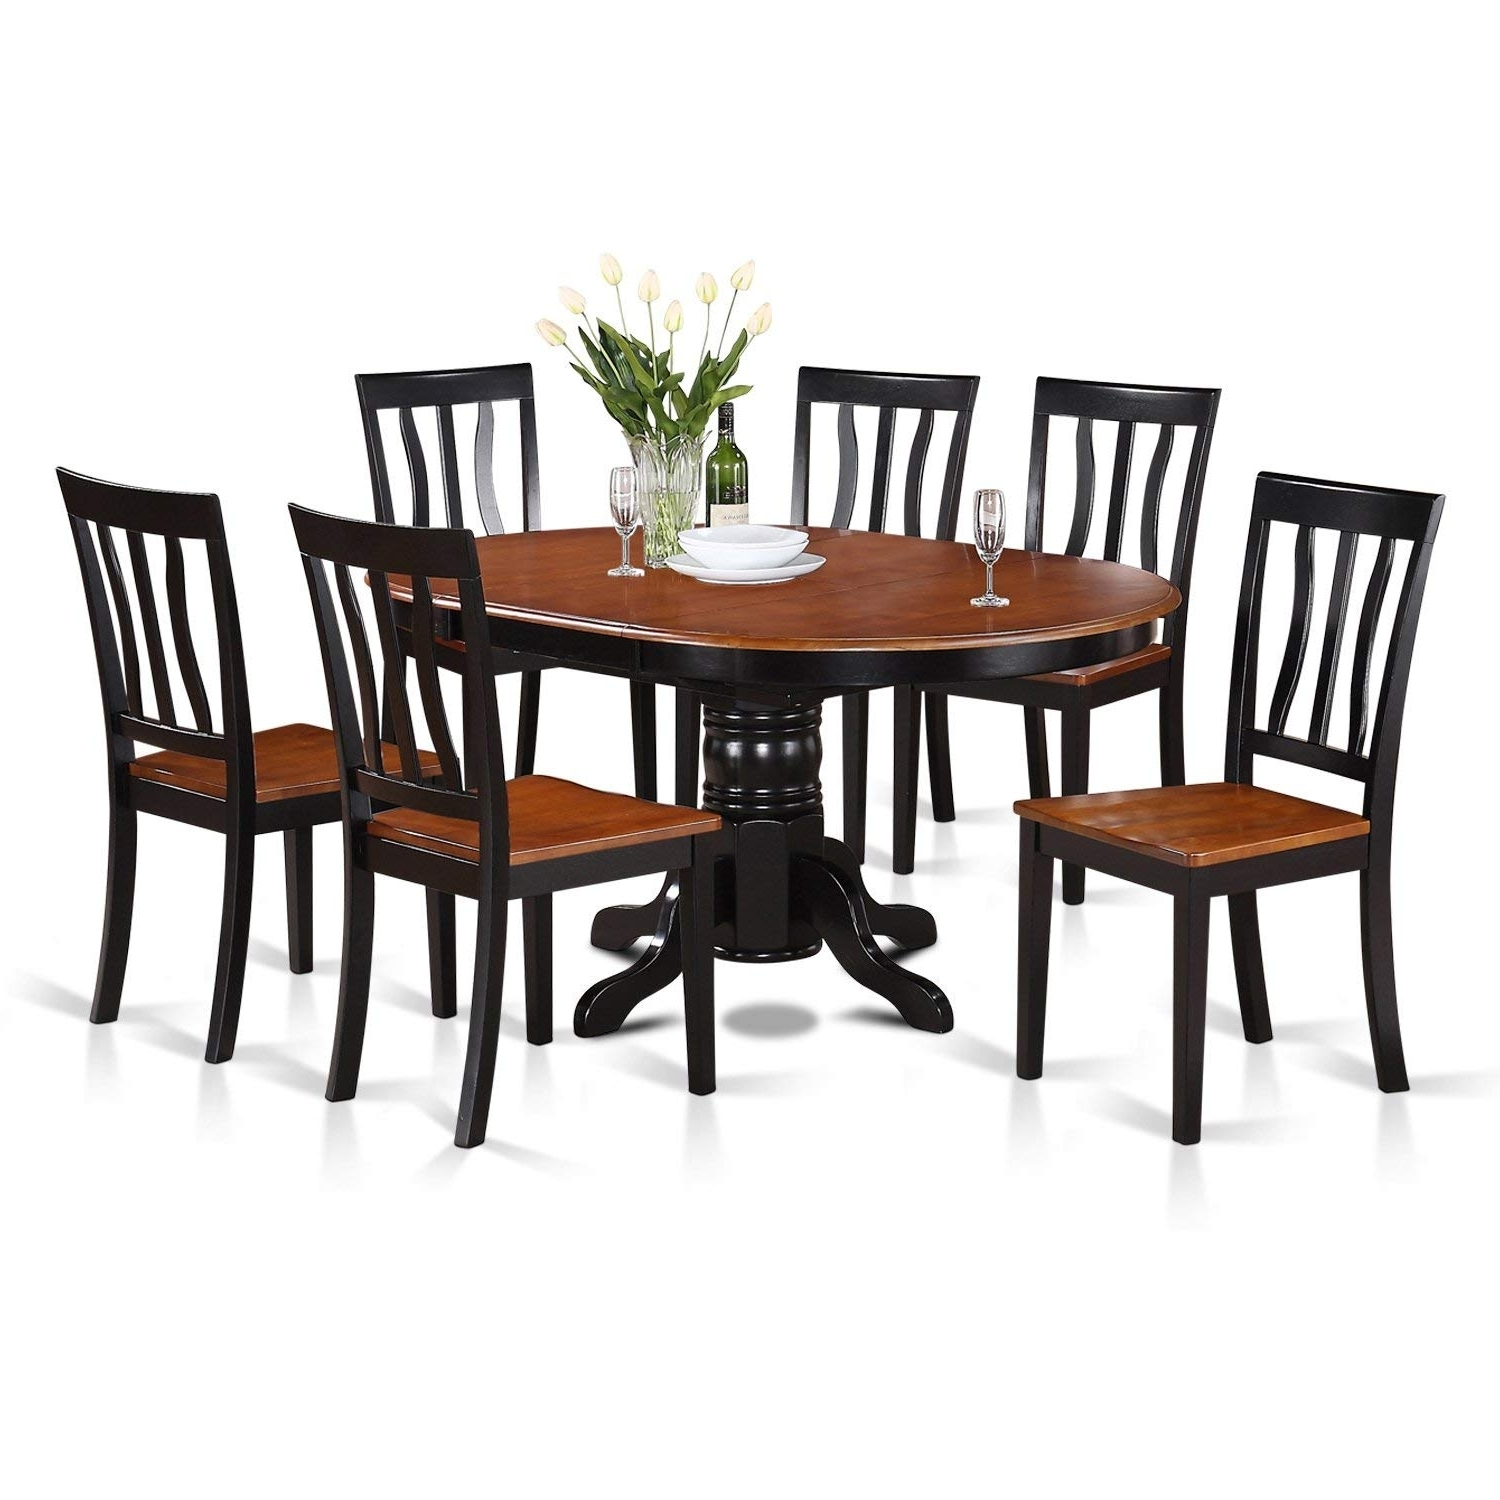 Most Recent Wood Dining Tables And 6 Chairs Within Amazon: East West Furniture Avat7 Blk W 7 Piece Dining Table Set (View 6 of 25)